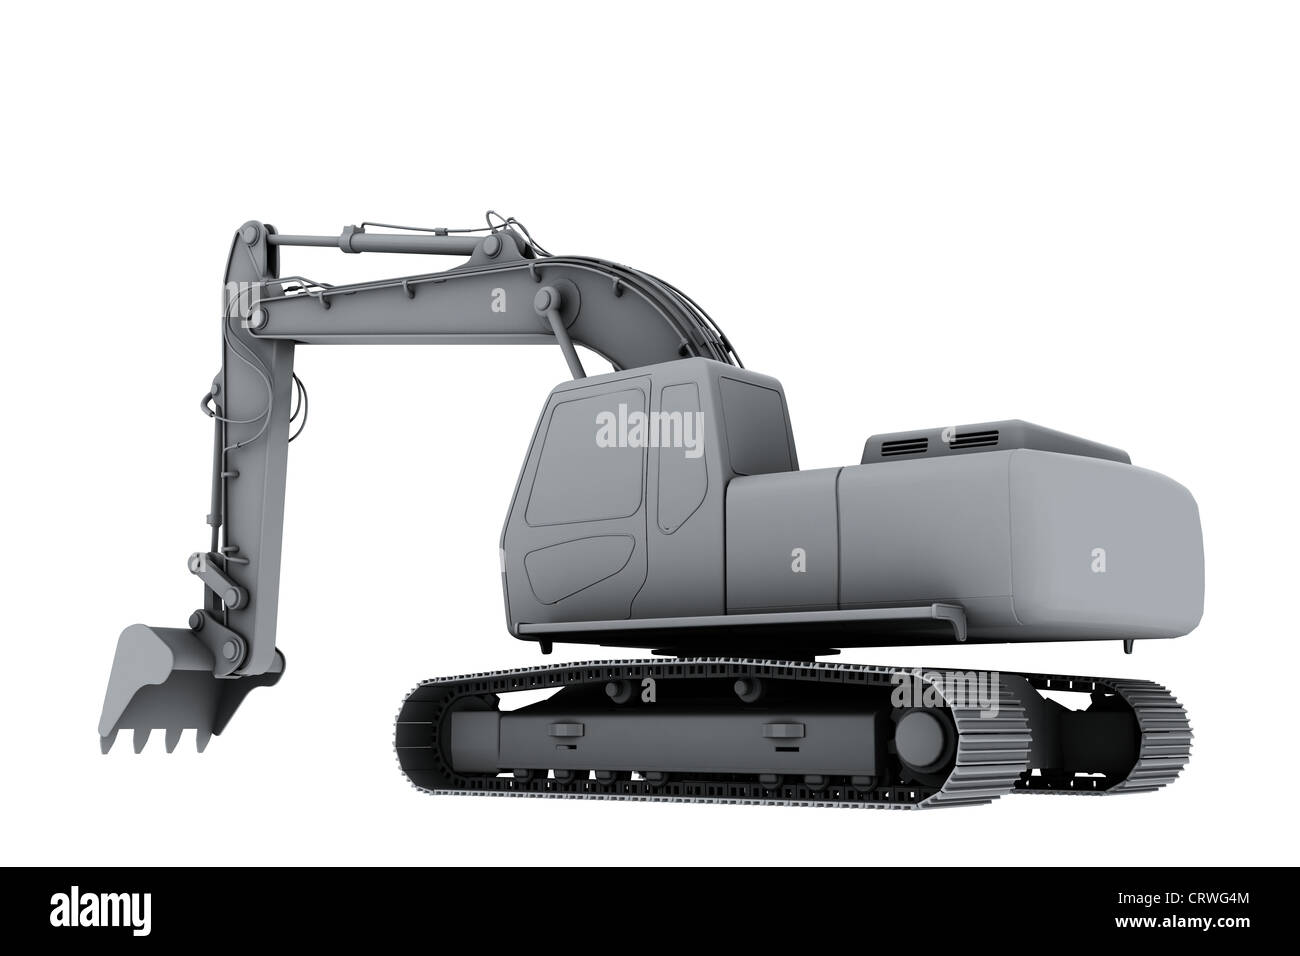 White model of the digger - Stock Image